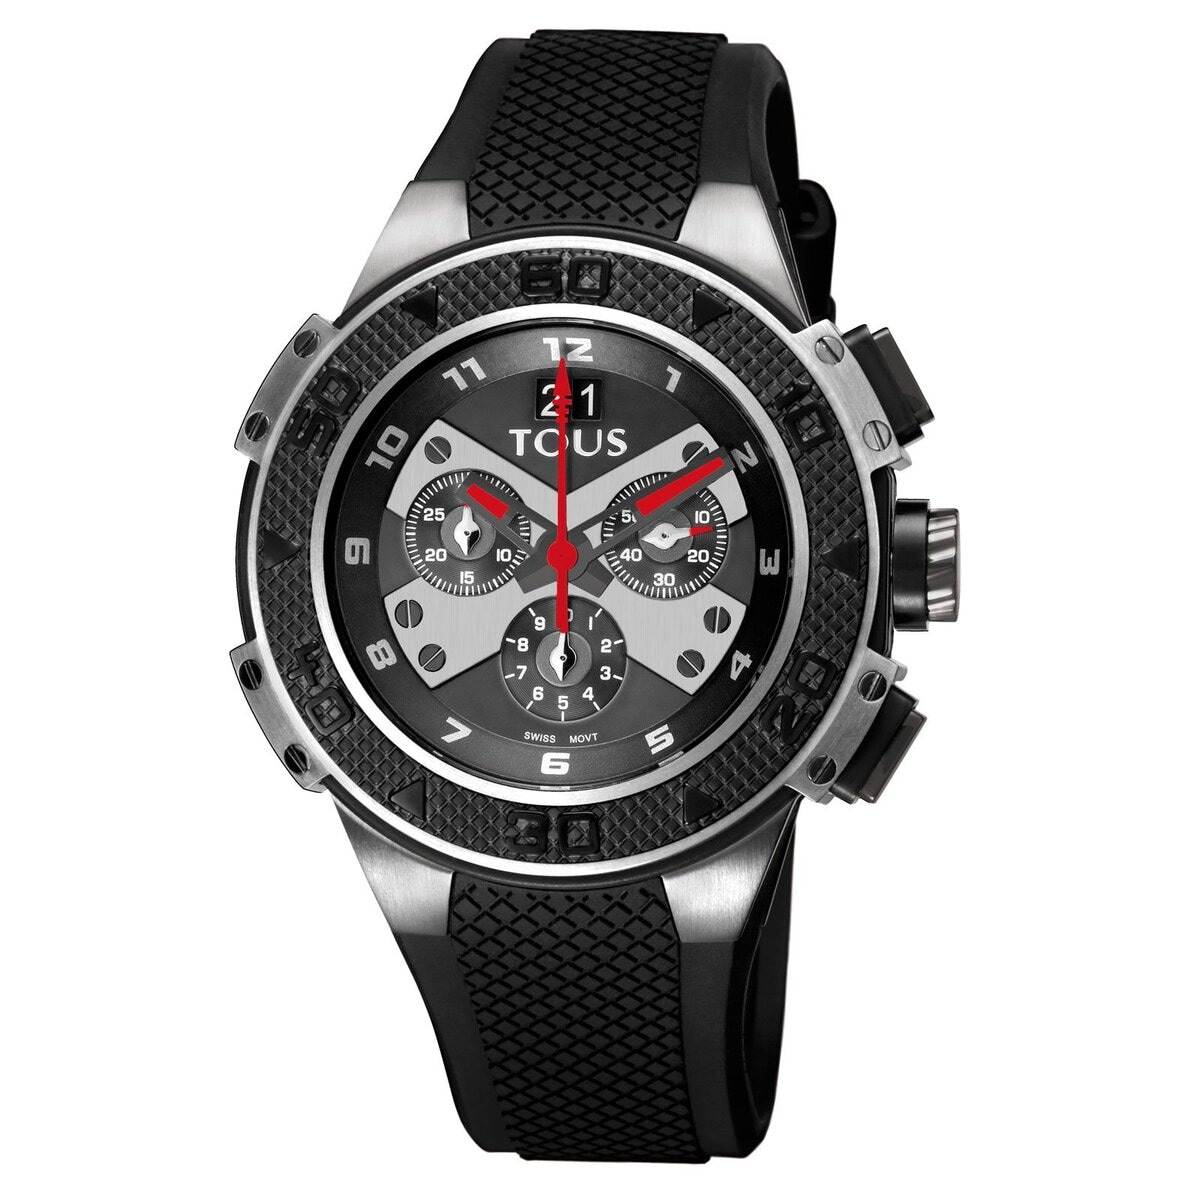 Two-tone black IP/Steel Xtous Watch with black Silicone strap